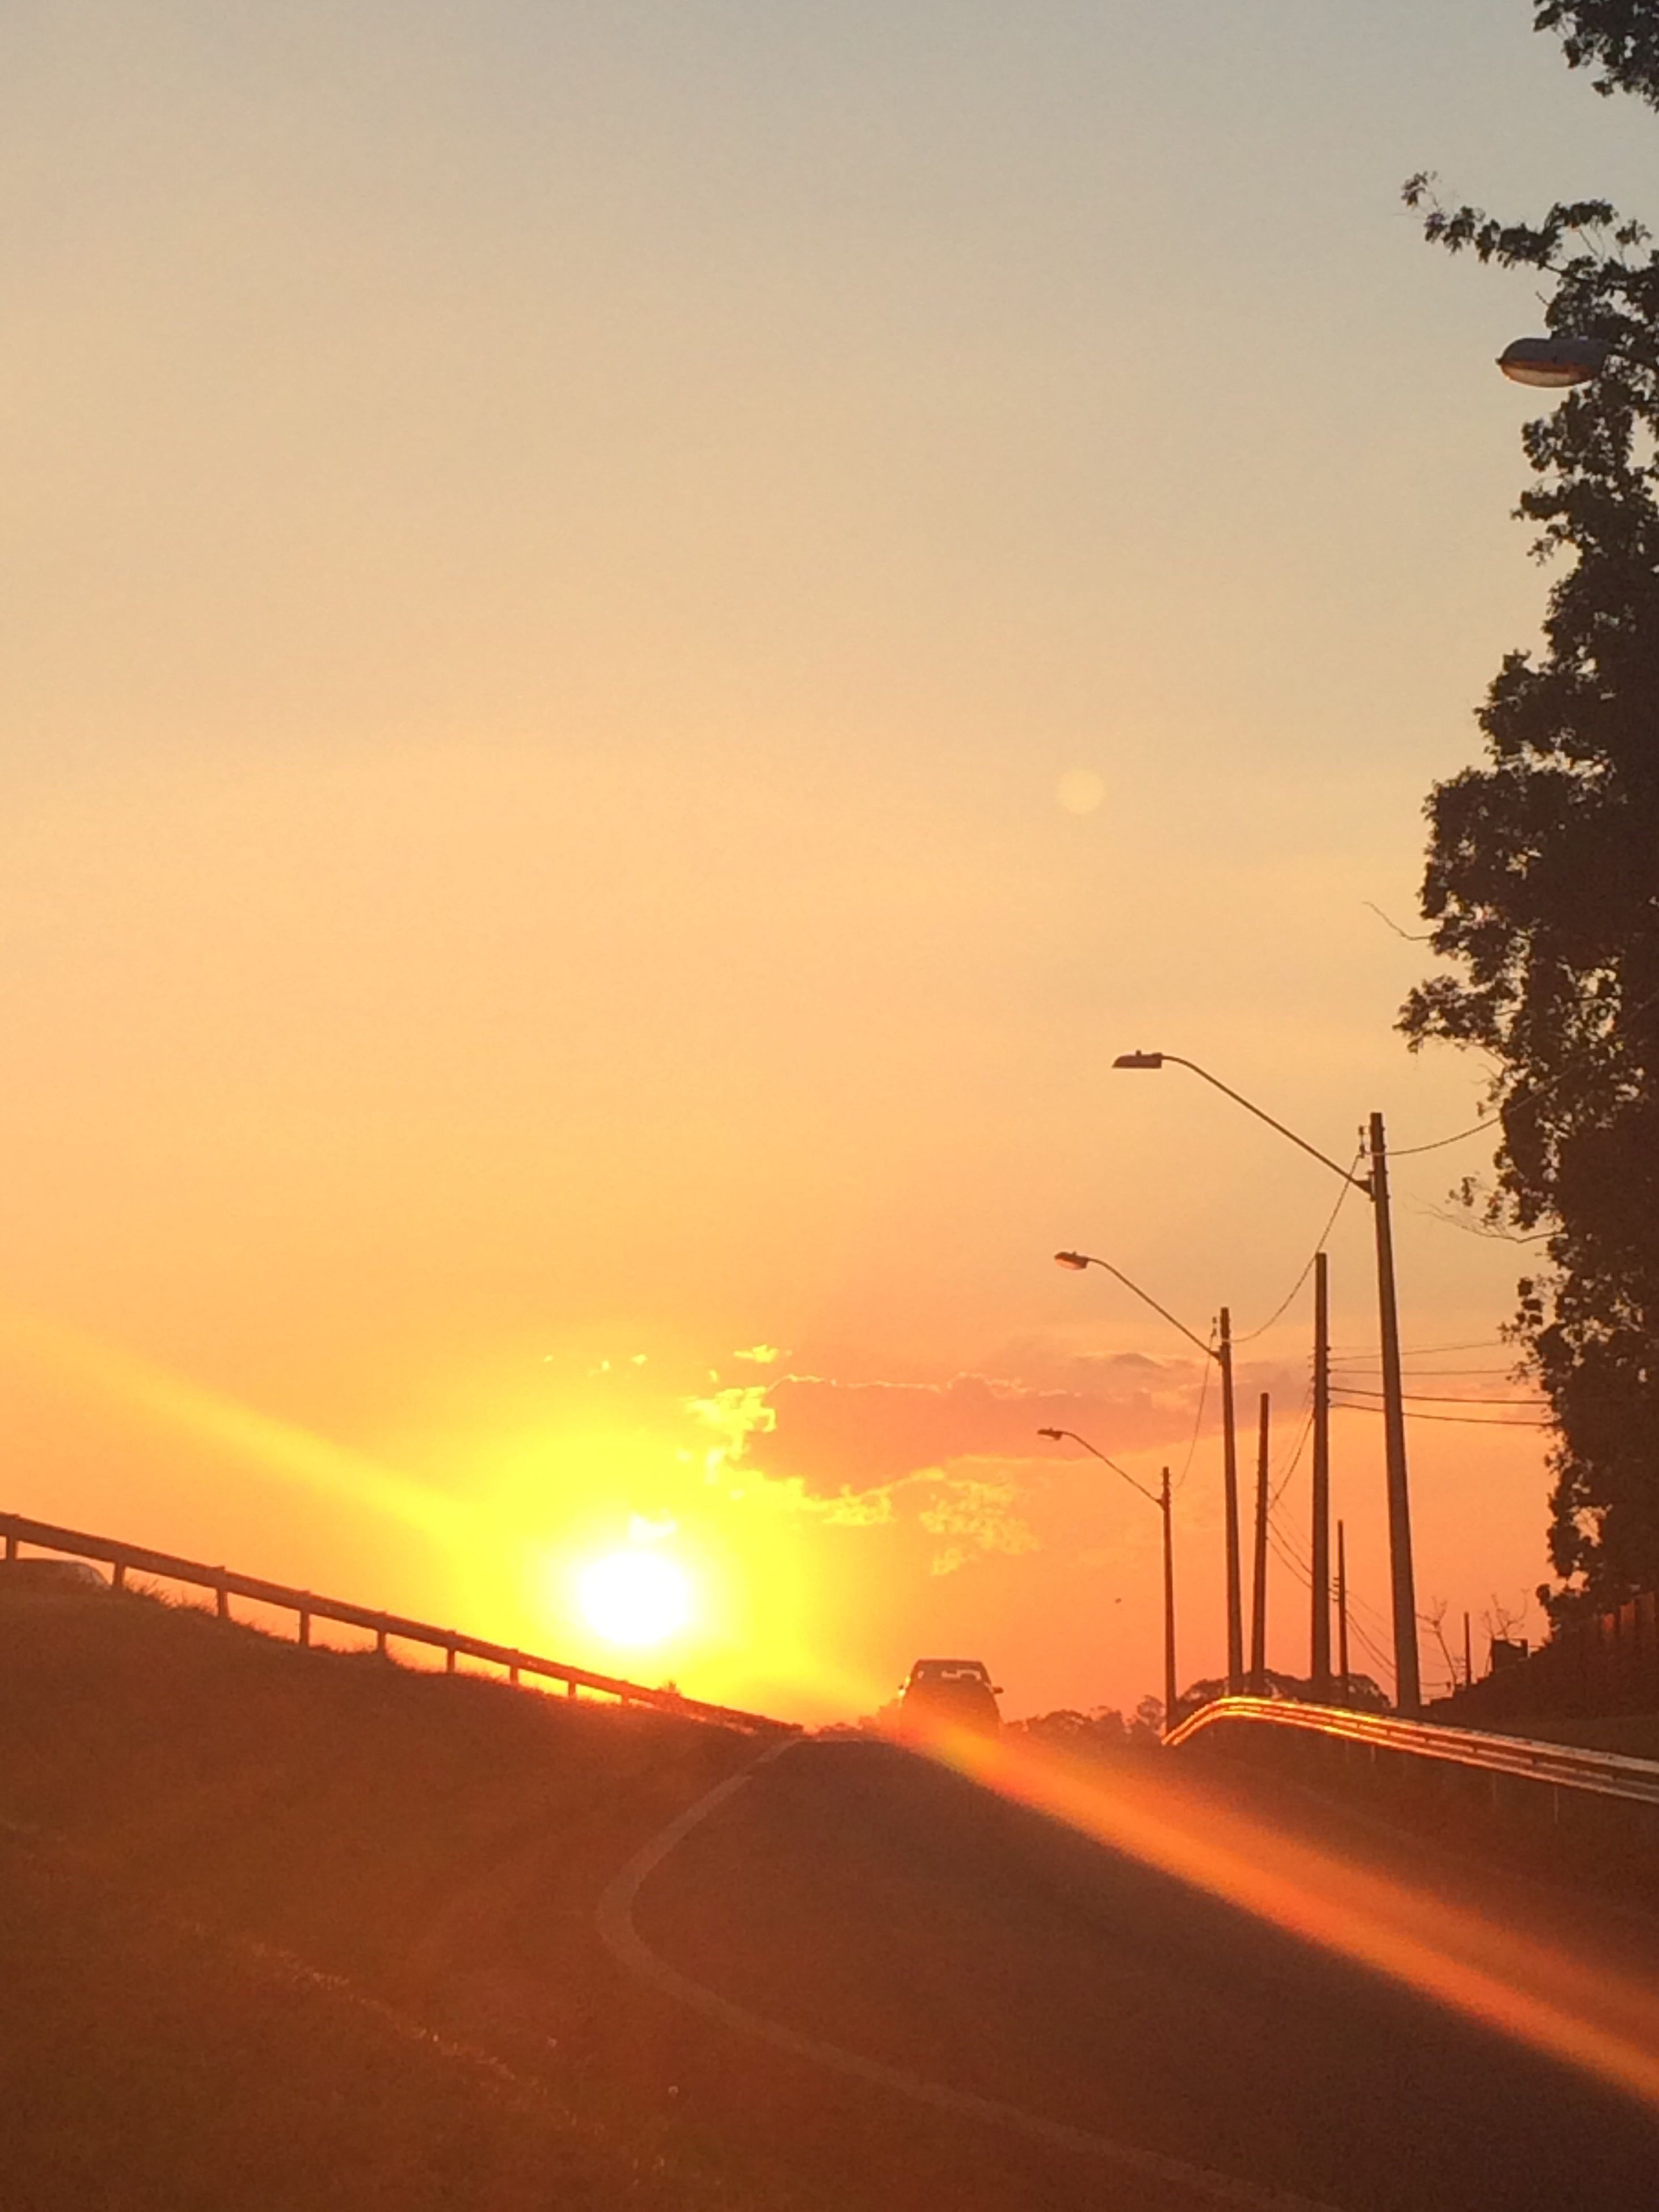 sunset, sun, street light, orange color, road, cloud, tree, scenics, tranquil scene, sky, tranquility, solitude, moody sky, beauty in nature, sunbeam, outdoors, dramatic sky, the way forward, surface level, nature, majestic, atmospheric mood, long, remote, outline, atmosphere